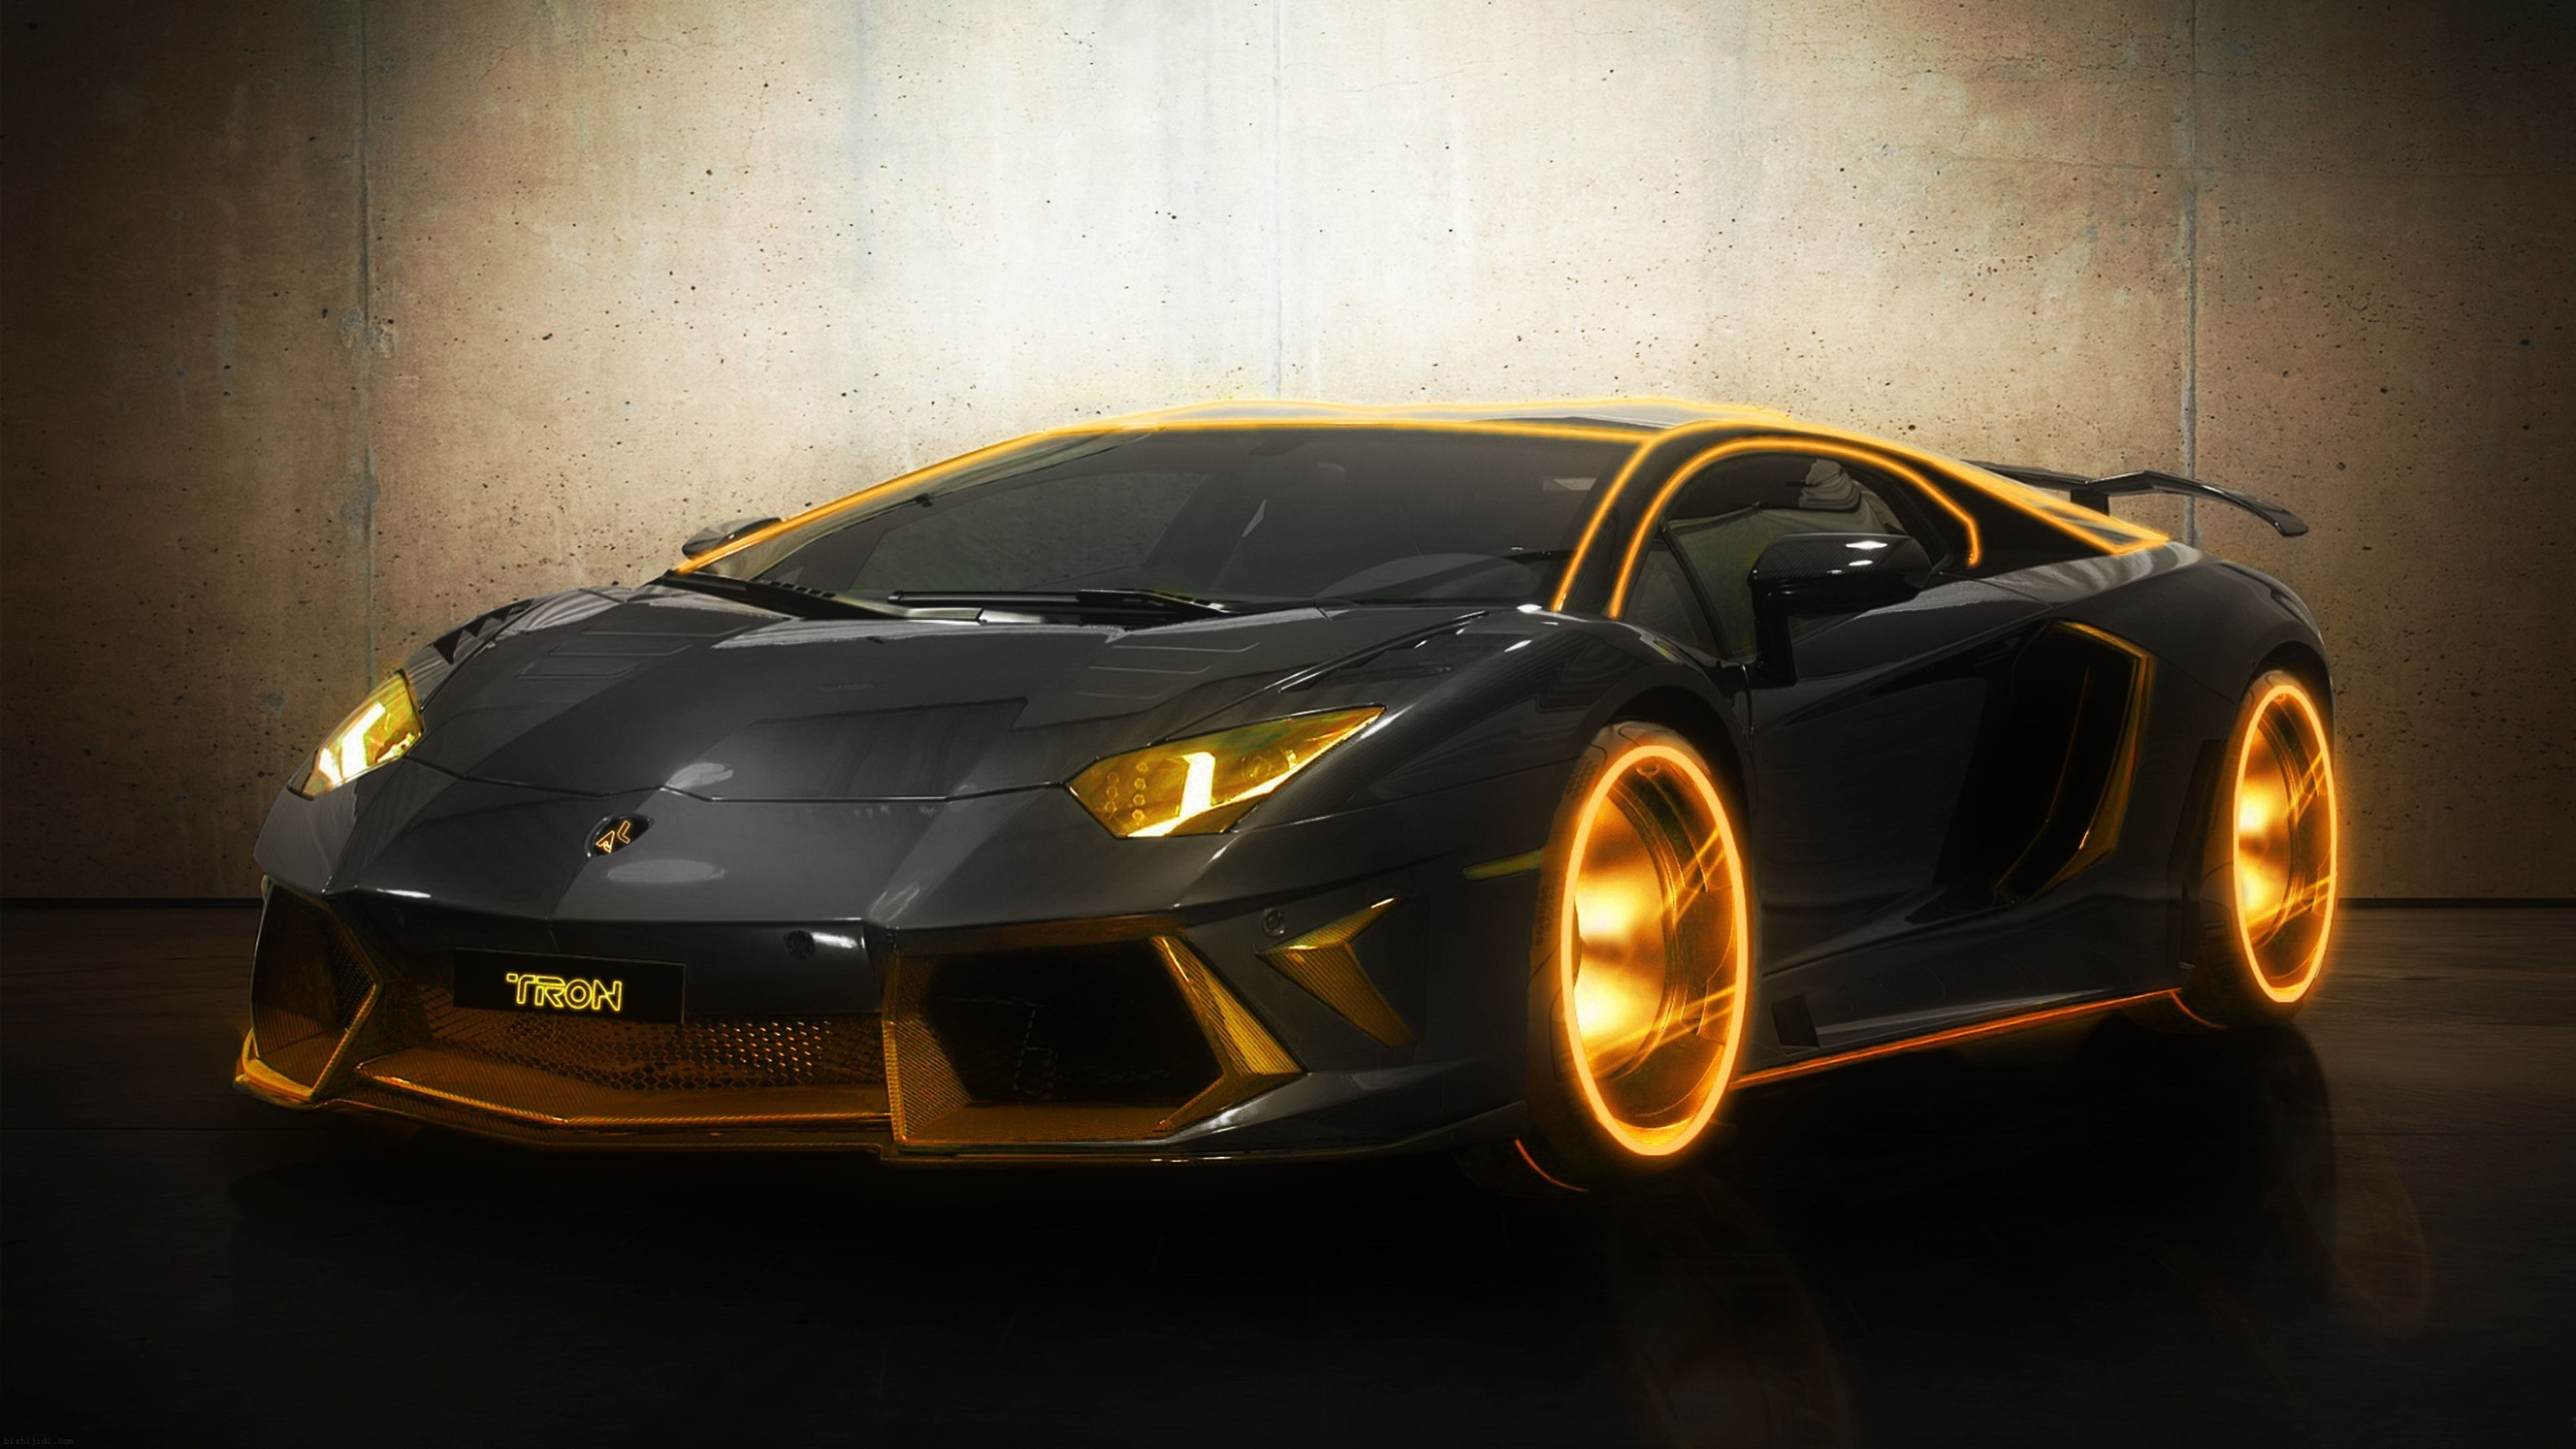 3840x2160 Pin Gold Cool Cars Wallpaper on Pinterest 0 HTML code. Lamborghini Aventador Tron Edition - Gear Heads